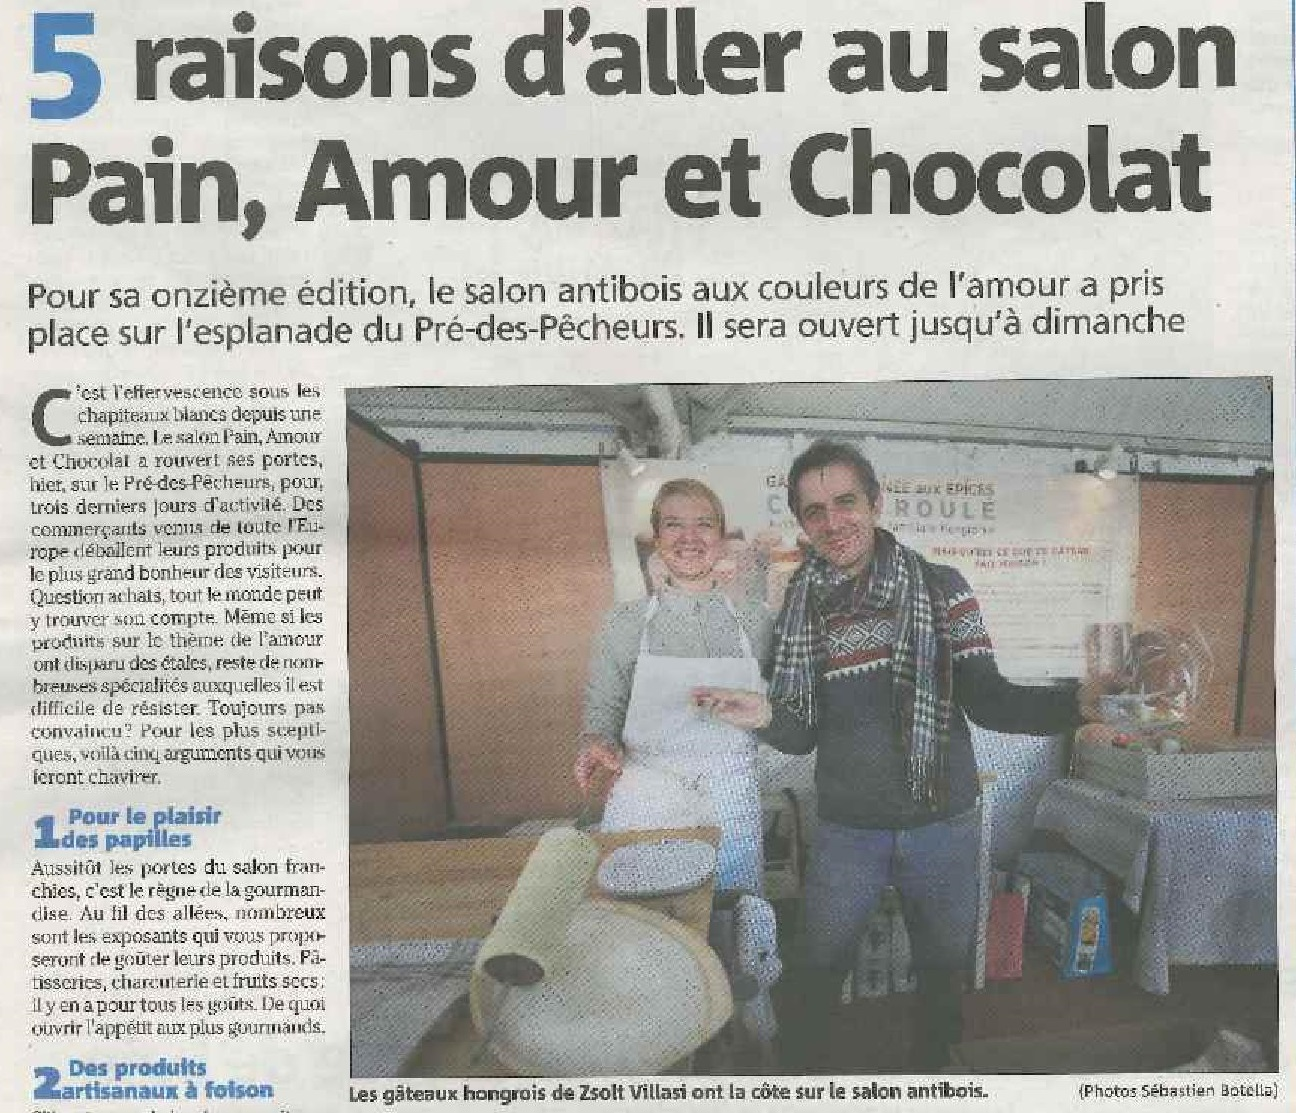 5 raisons d'aller au salon Pain, Amour et Chocolat